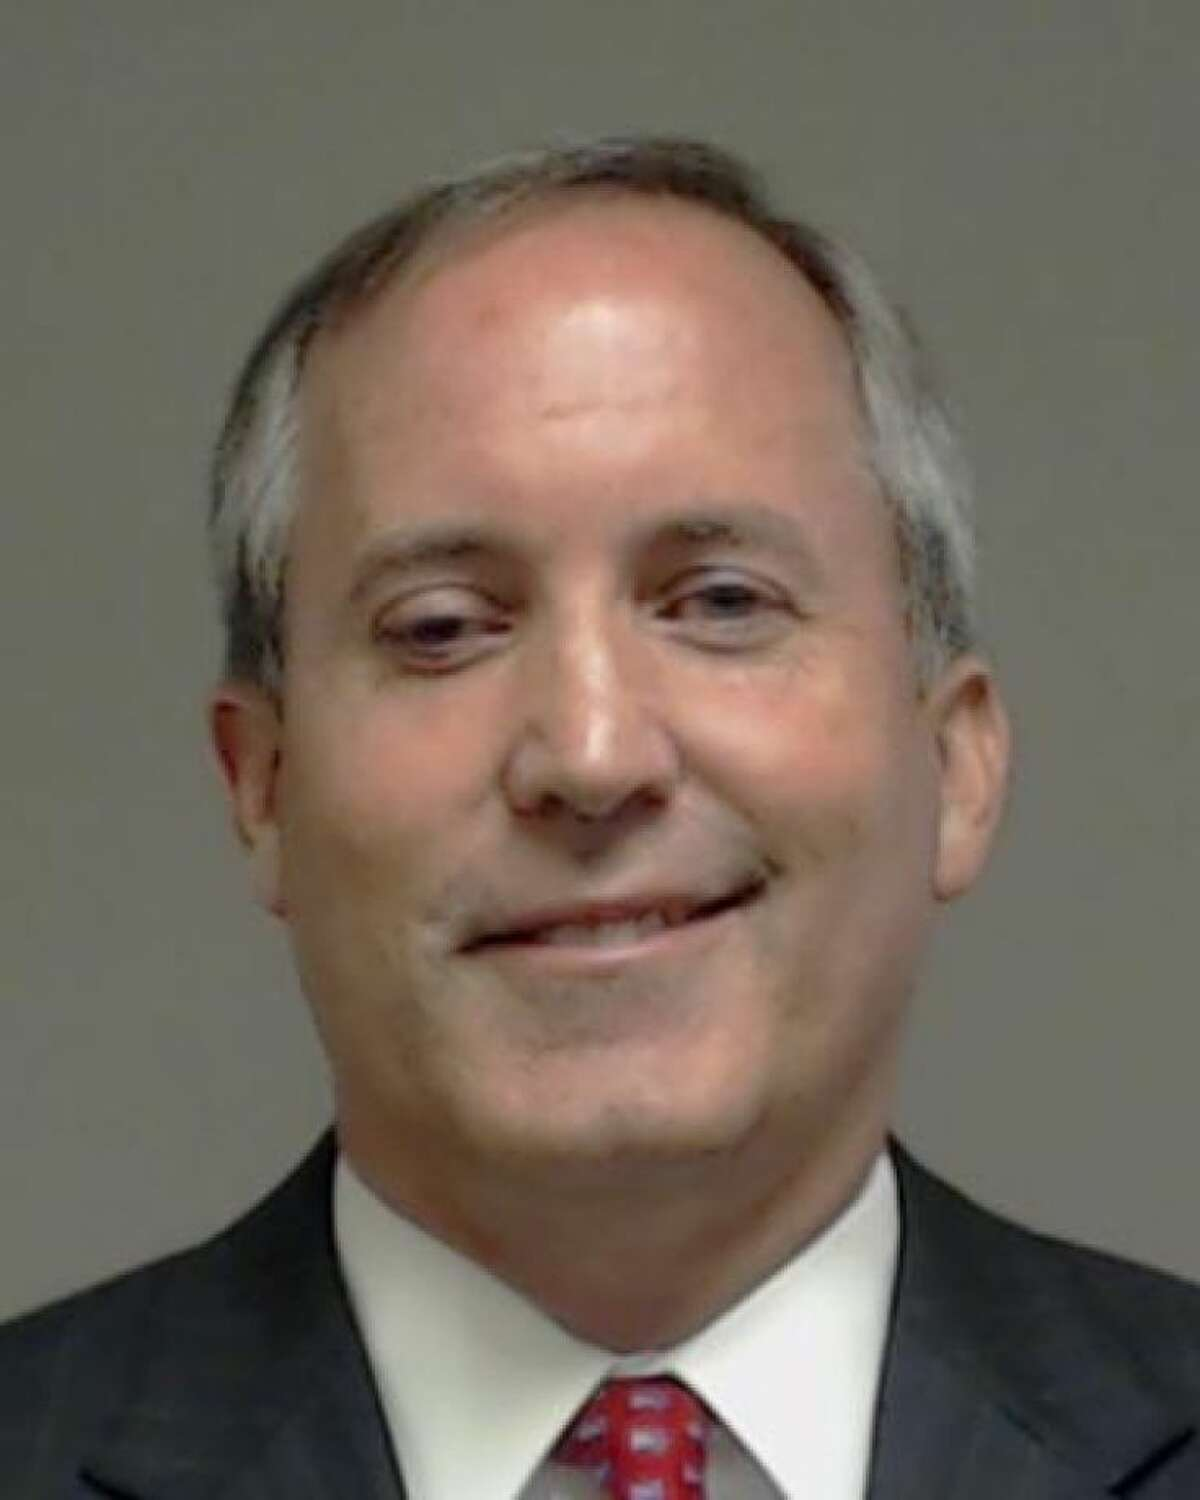 What charges does he face? All of the charges relate to activities before Paxton was elected attorney general last fall.Two of them are first-degree felonies accusing the 52-year-old Republican of engaging in fraud by facilitating the sale of more than $100,000 in stock in a tech startup based in his hometown of McKinney. Prosecutors say Paxton didn't disclose to investors that the company would compensate him if they bought stock and that it had already given him 100,000 shares to help it land investors.One of the complaints against Paxton was from investor and fellow Republican state Rep. Byron Cook of Corsicana.Those charges carry punishments of five to 99 years in prison.The other charge, a third-degree felony, accuses Paxton of rendering services as an investment adviser without being registered with the state. That charge carries a penalty of two to 10 years in prison.Paxton's attorney, Joe Kendall, says the attorney general will plead not guilty.